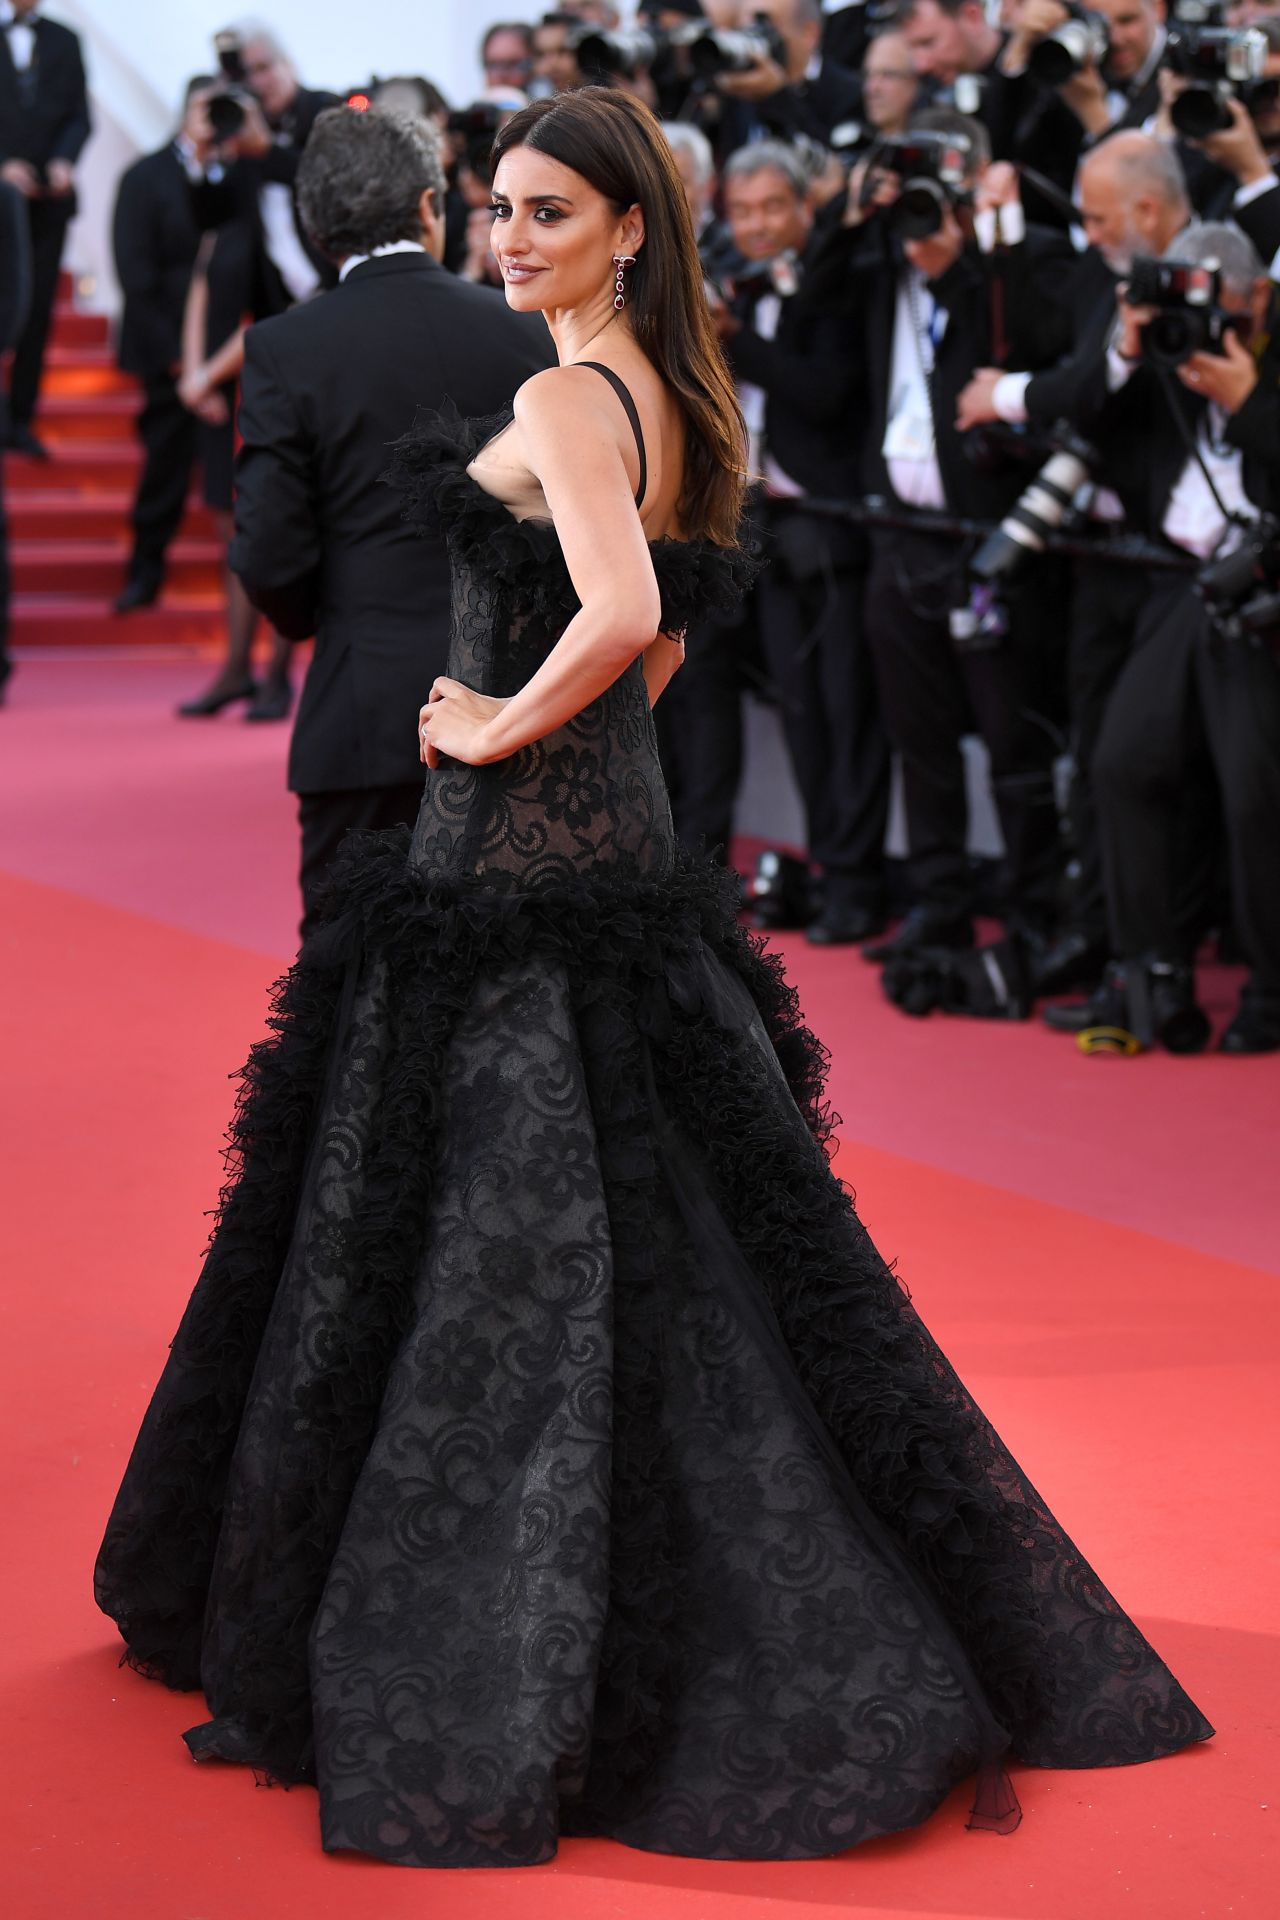 http://celebmafia.com/wp-content/uploads/2018/05/penelope-cruz-everybody-knows-premiere-and-cannes-film-festival-2018-opening-ceremony-7.jpg